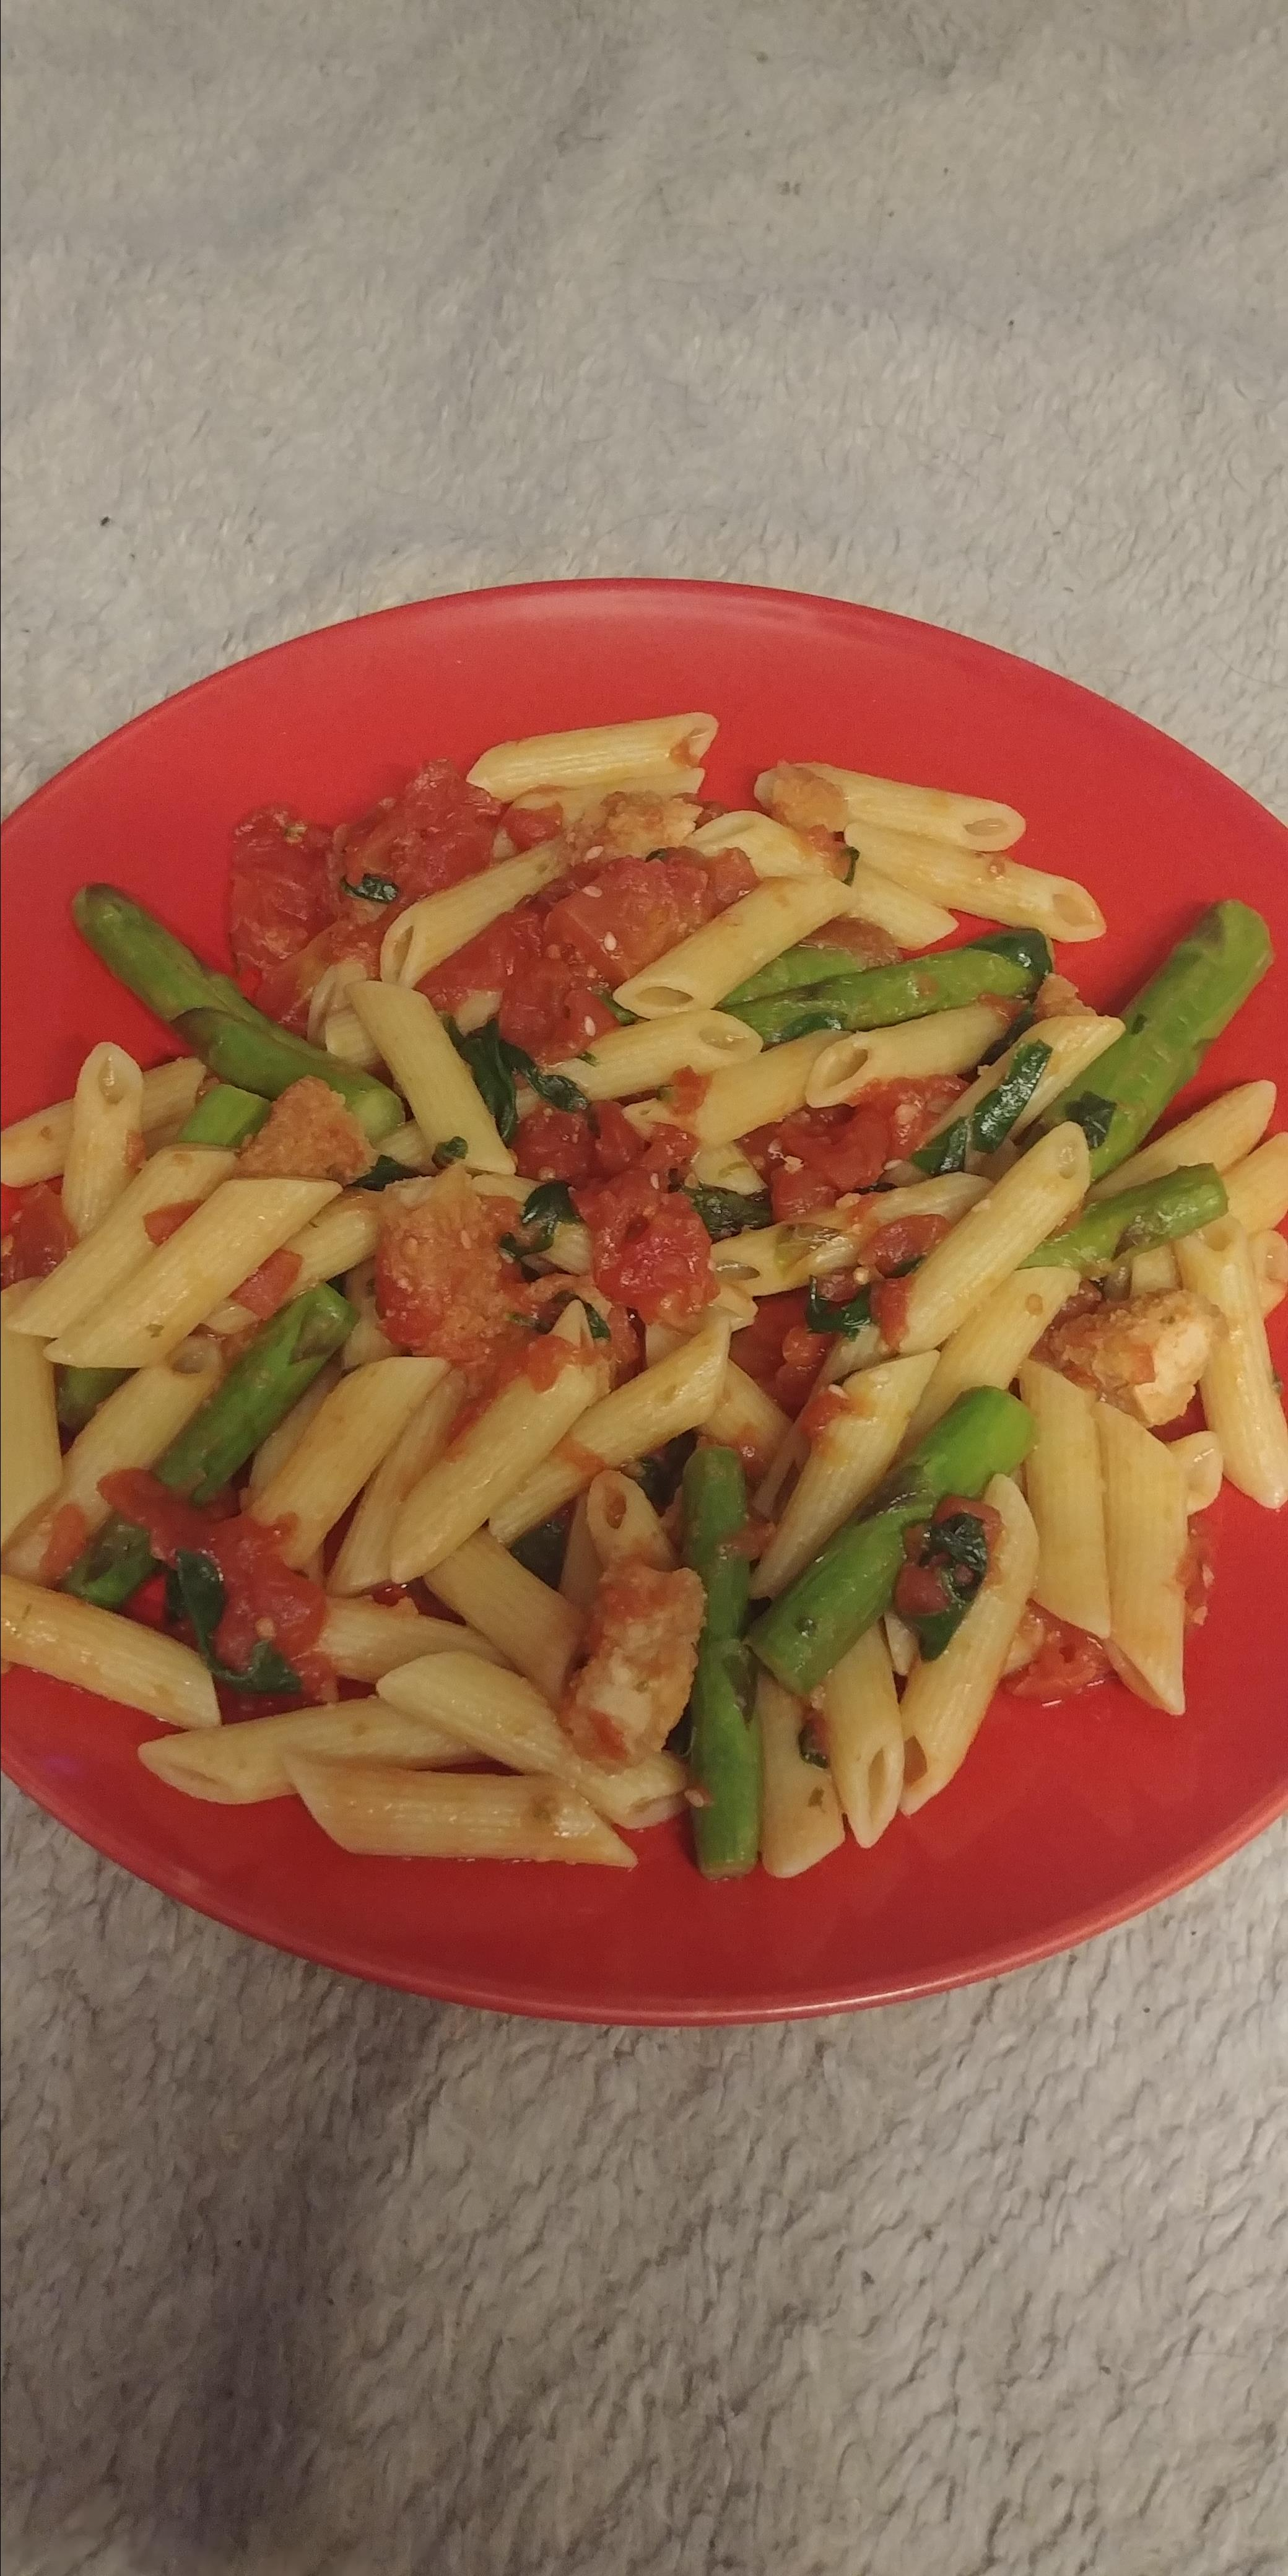 Penne with Chicken and Asparagus Shogun